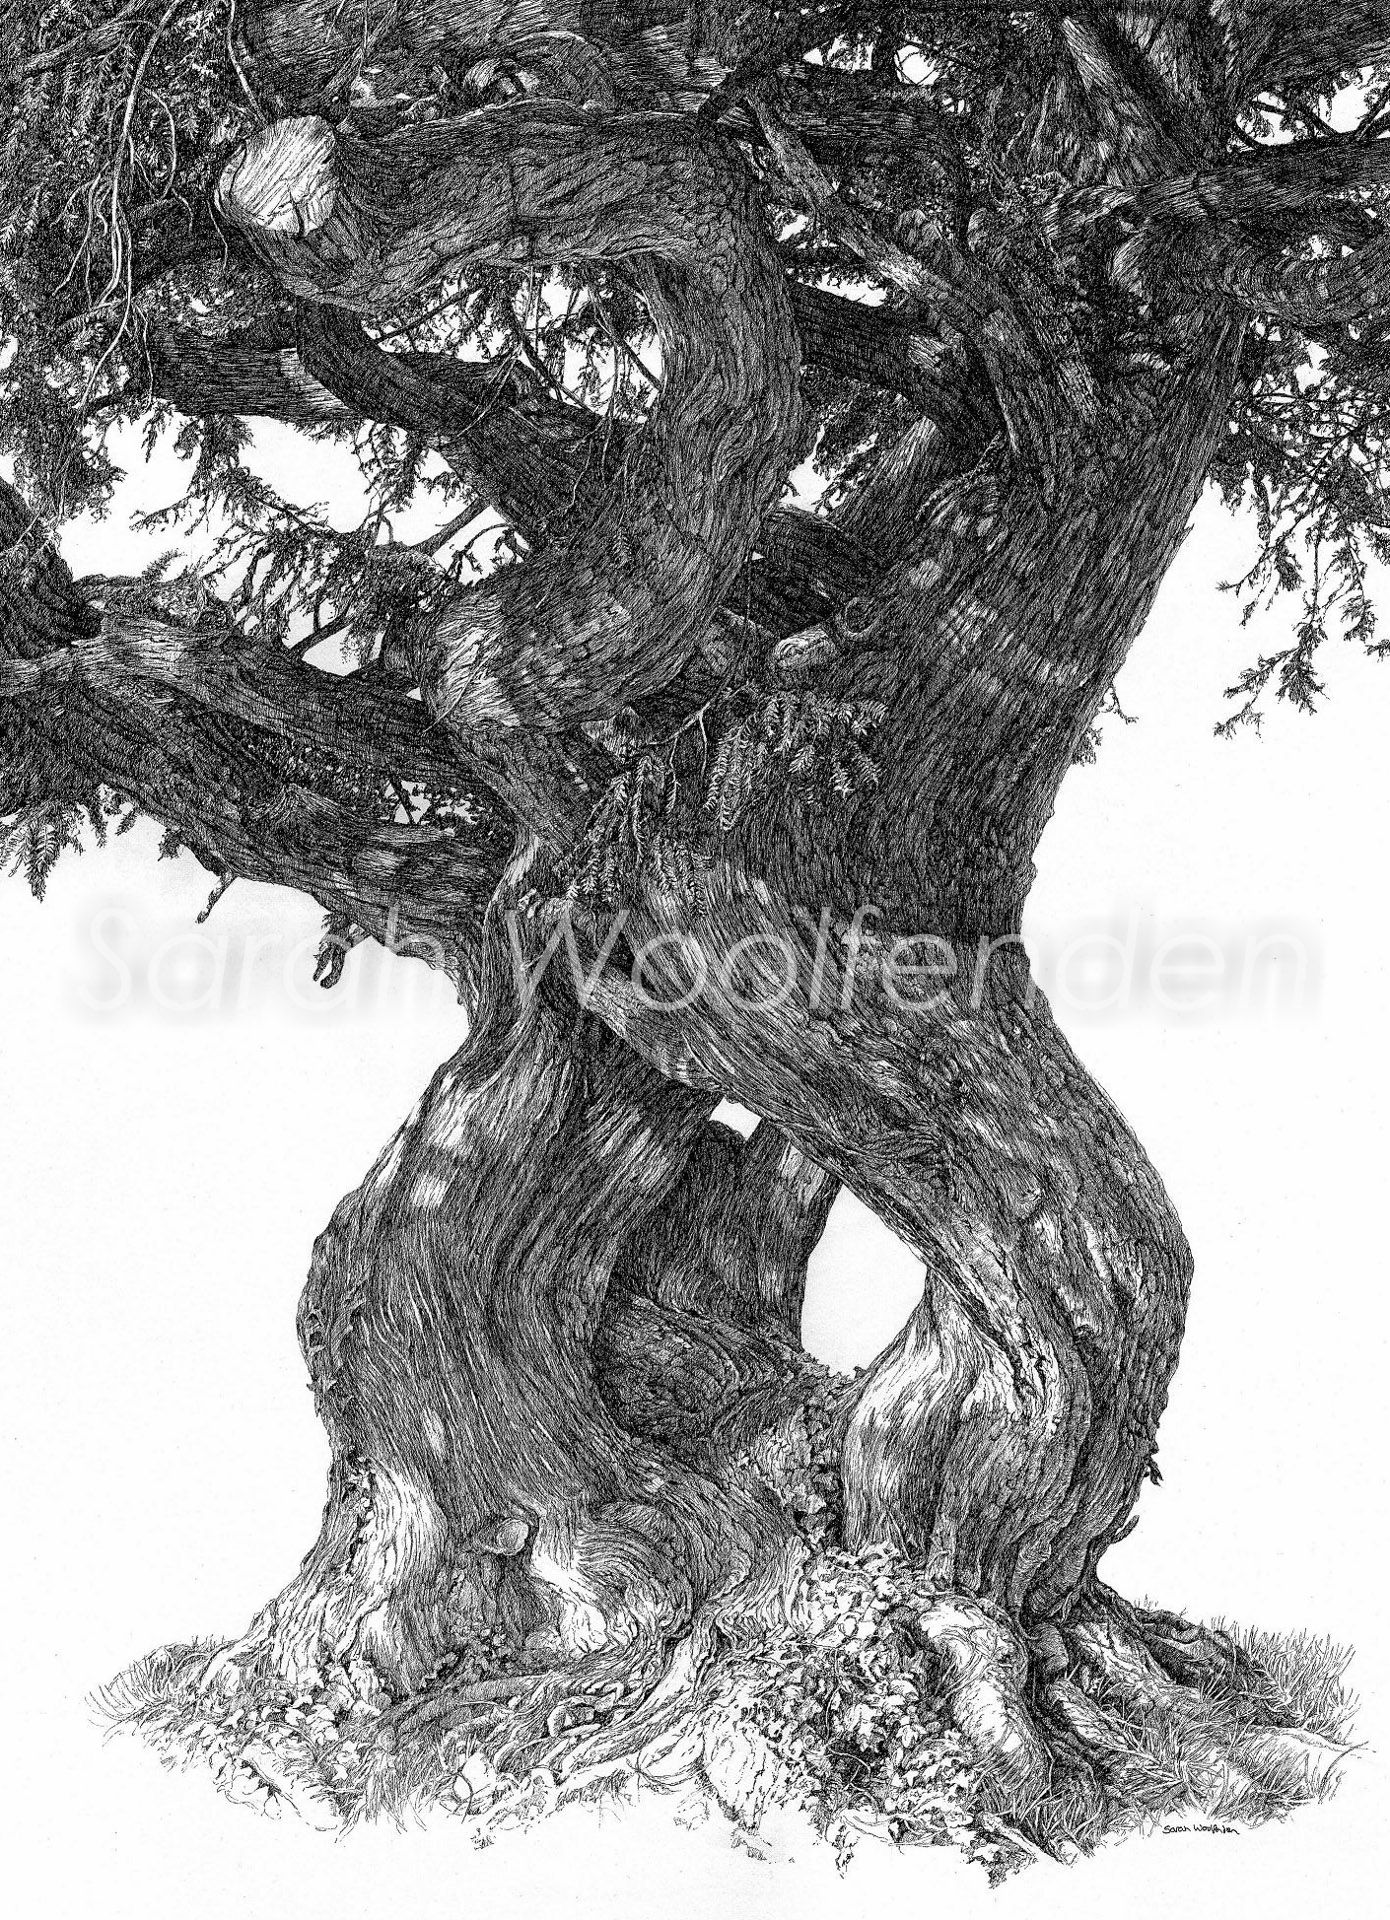 Twisted Yew Print 22 Cm X 31 Cm Prints Monochrome Art Large Poster Follow the simple instructions and in no time you've created a great looking tree drawing. pinterest